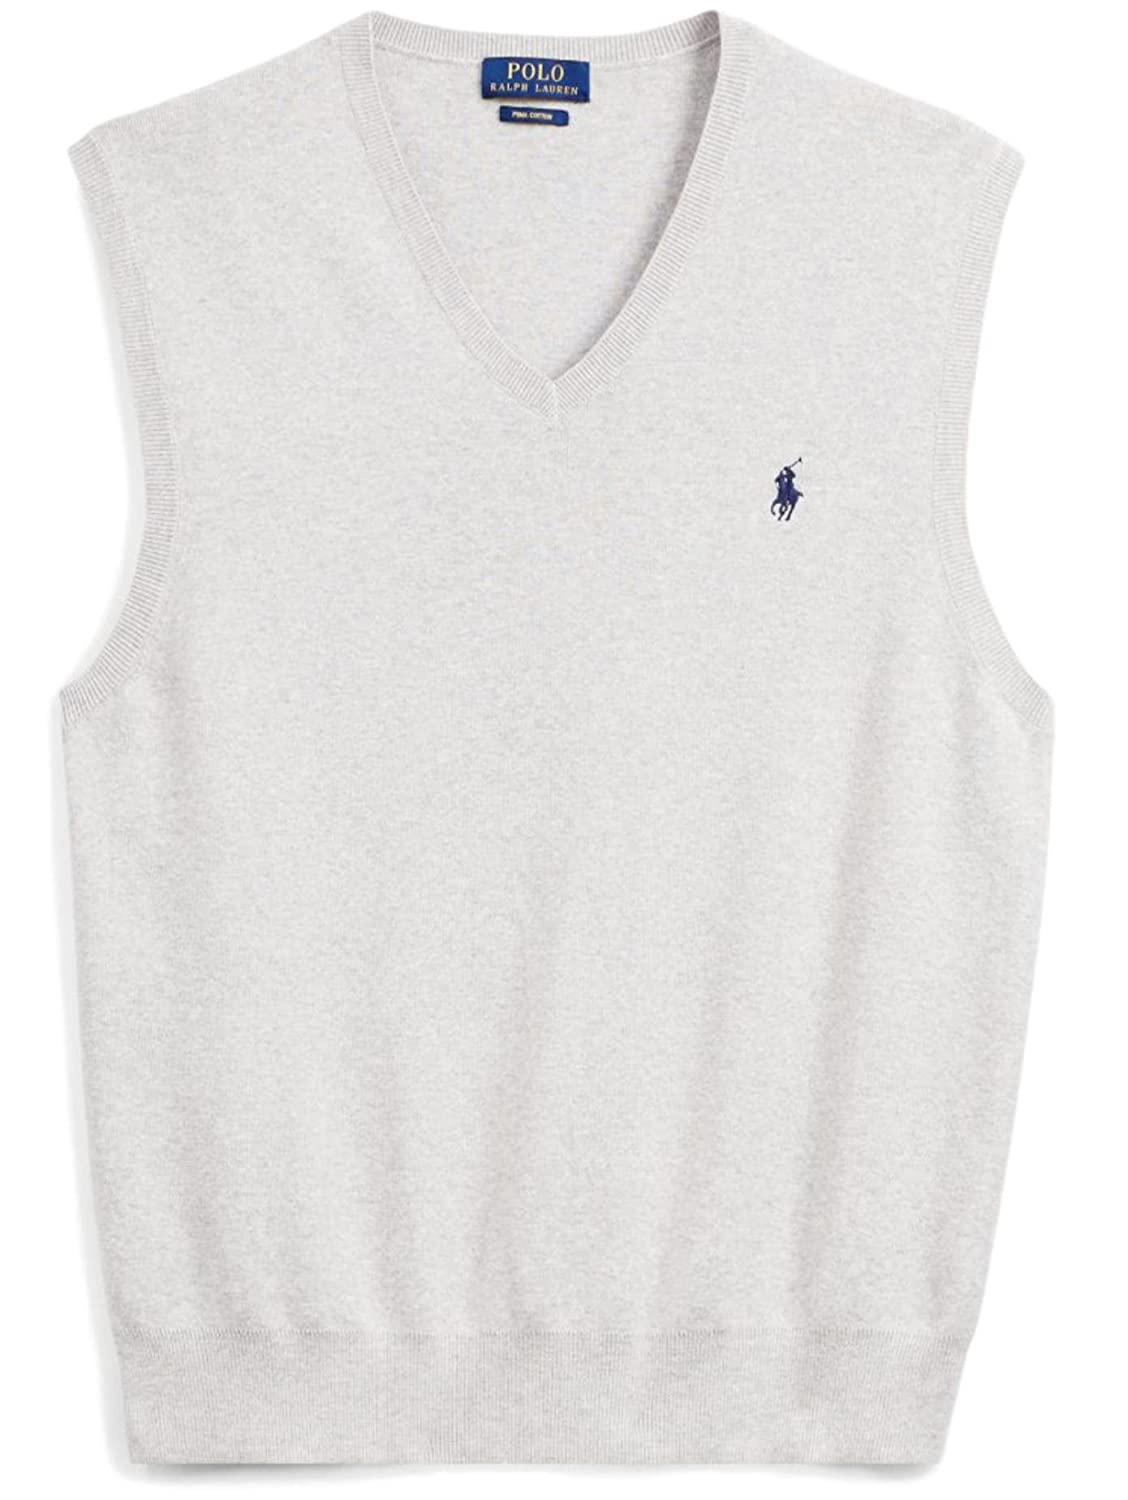 Polo Ralph Lauren Men's Pima Cotton Sweater Vest